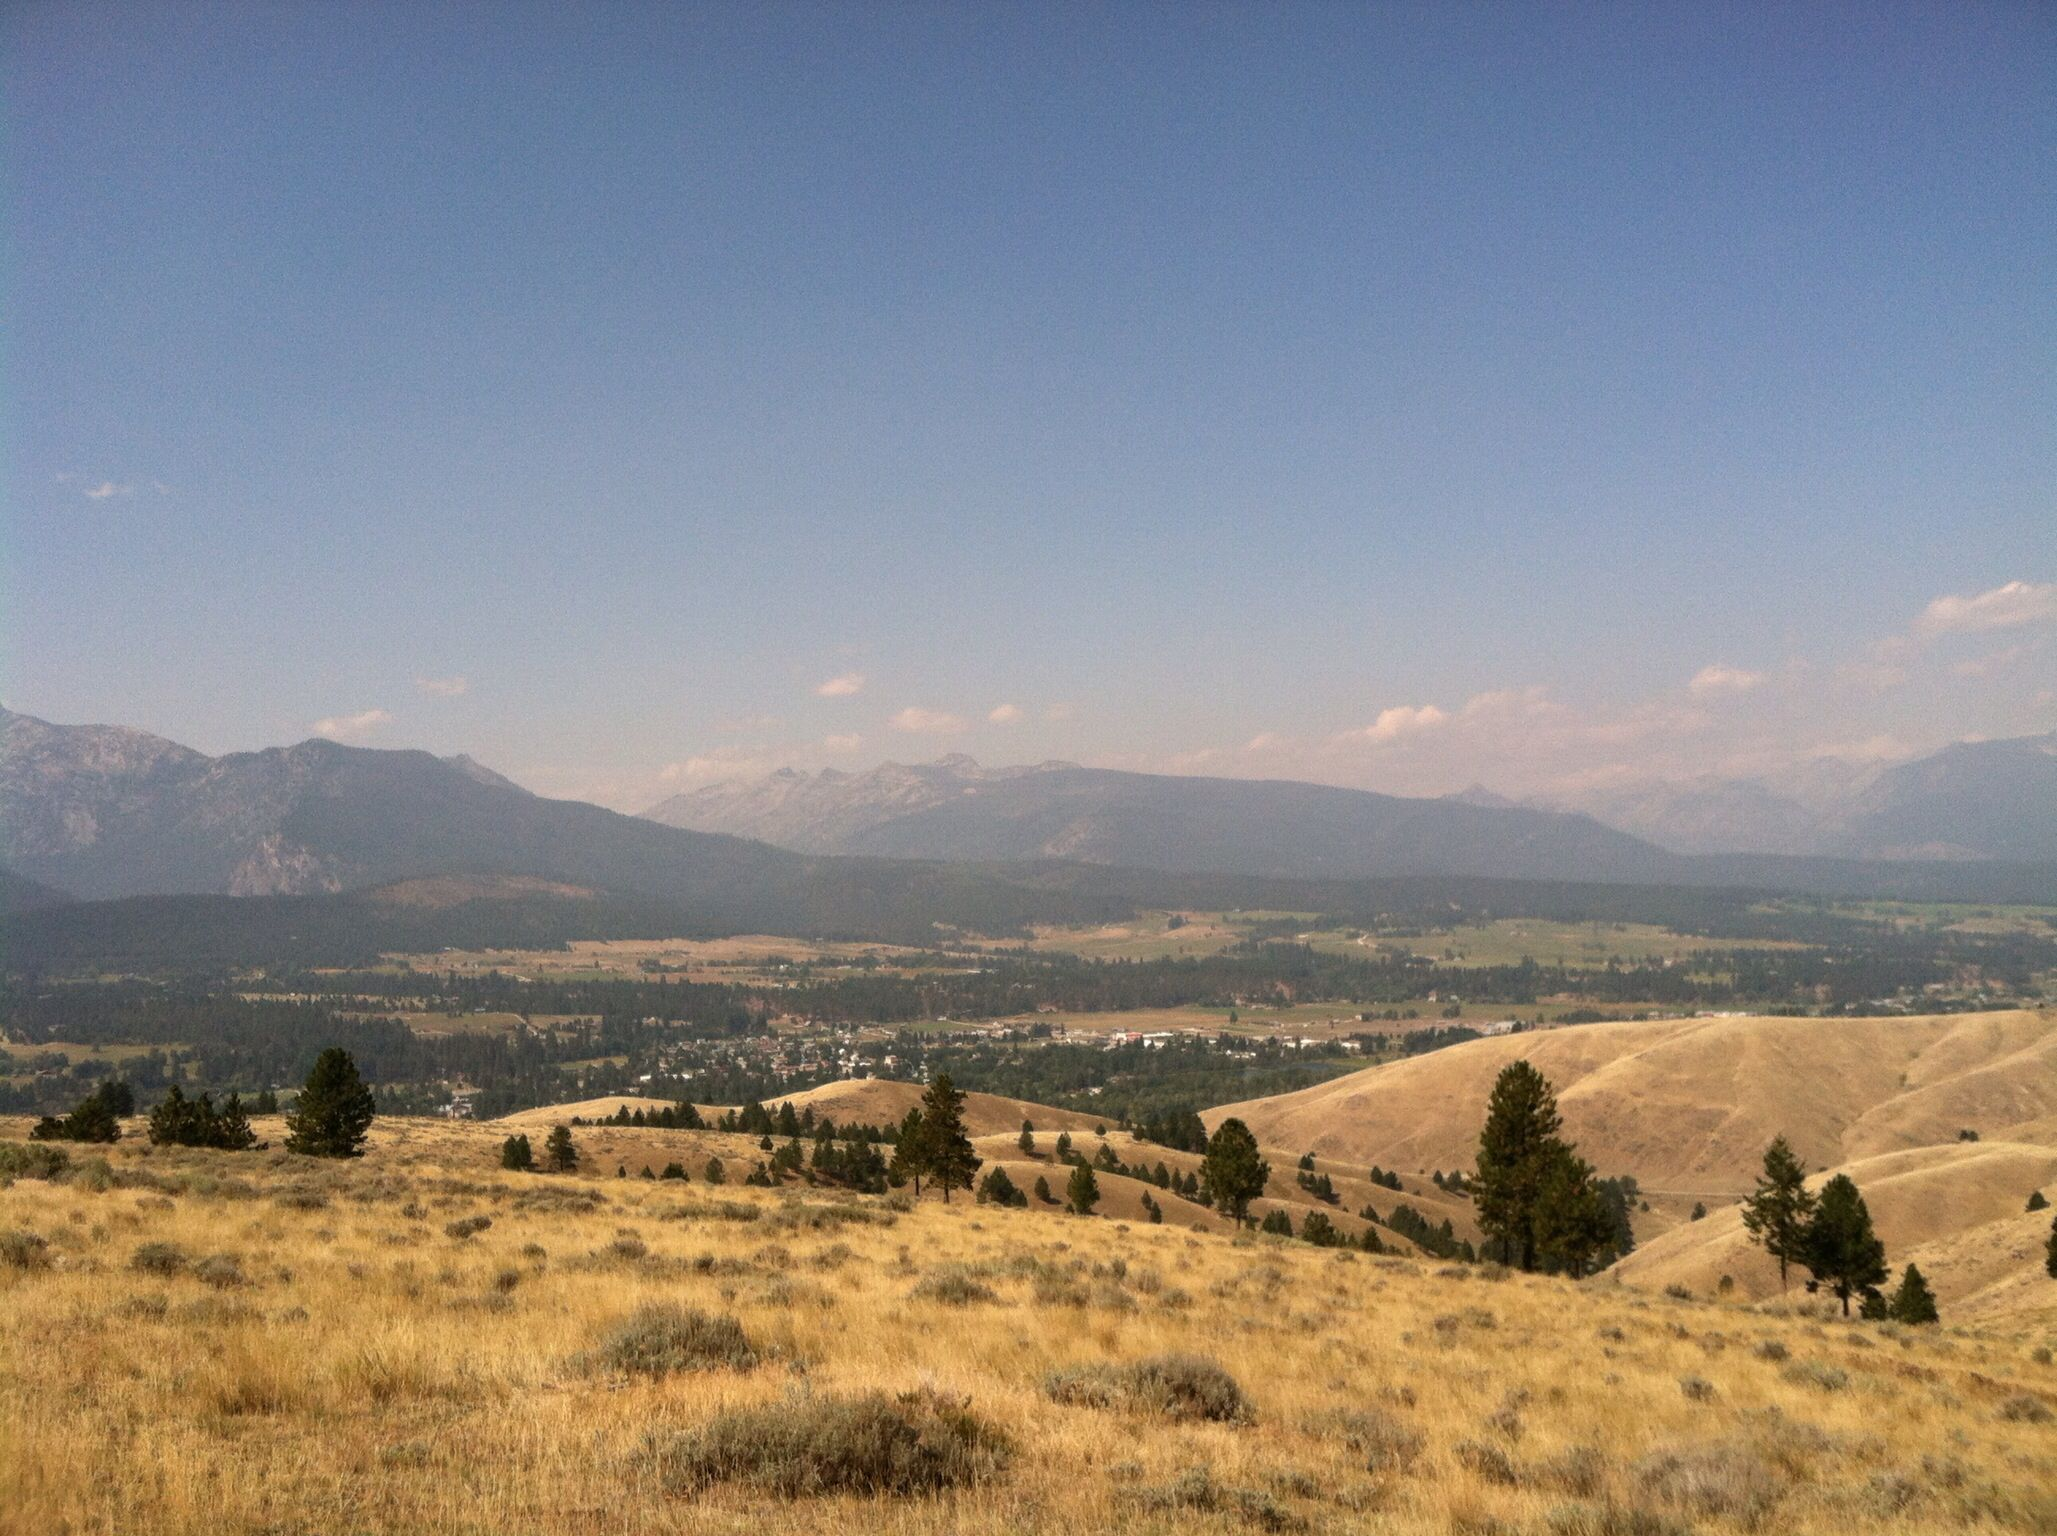 Horseback ride, view of Darby, MT